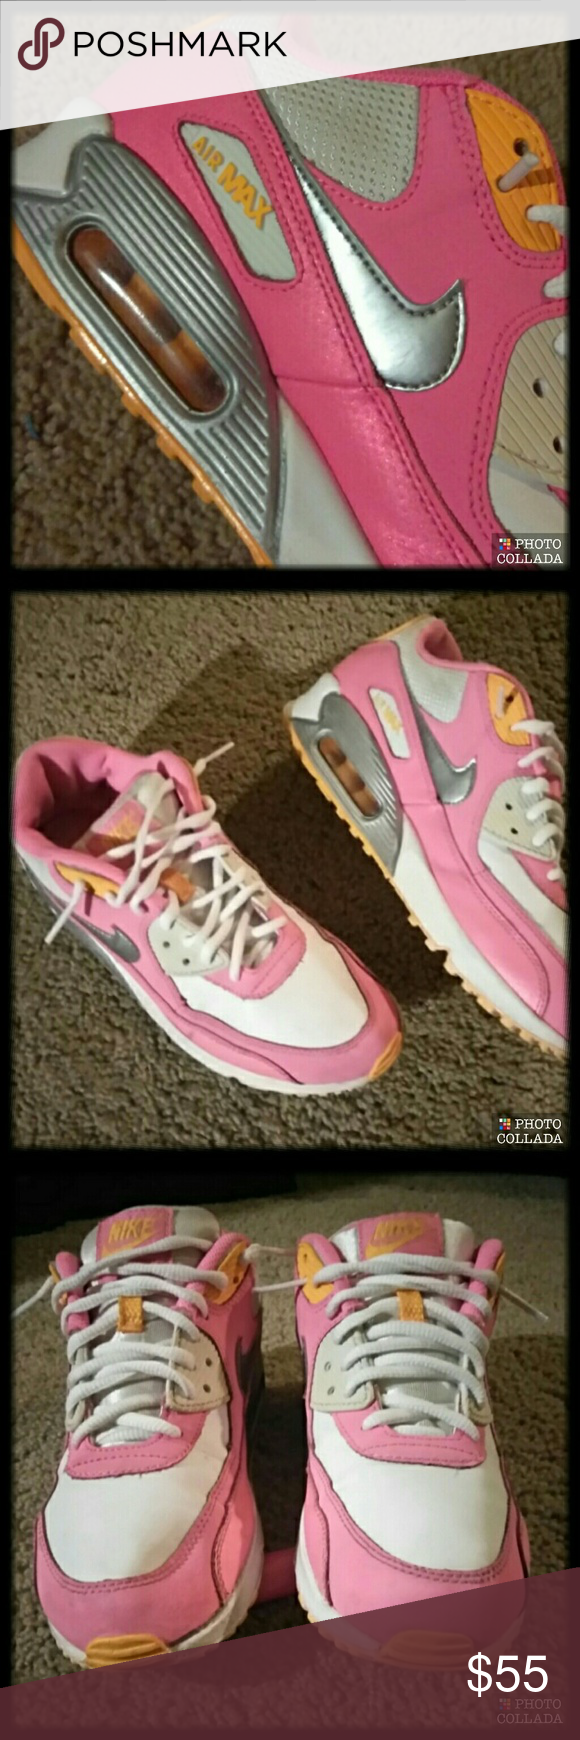 500fc440bef7 🍡Rare Sherbet Nike Air Max 🍡 Size  7Y White and Pink with Orange and  Silver accents   345017-120 Excellent condition Minor signs of wear but  overall ...